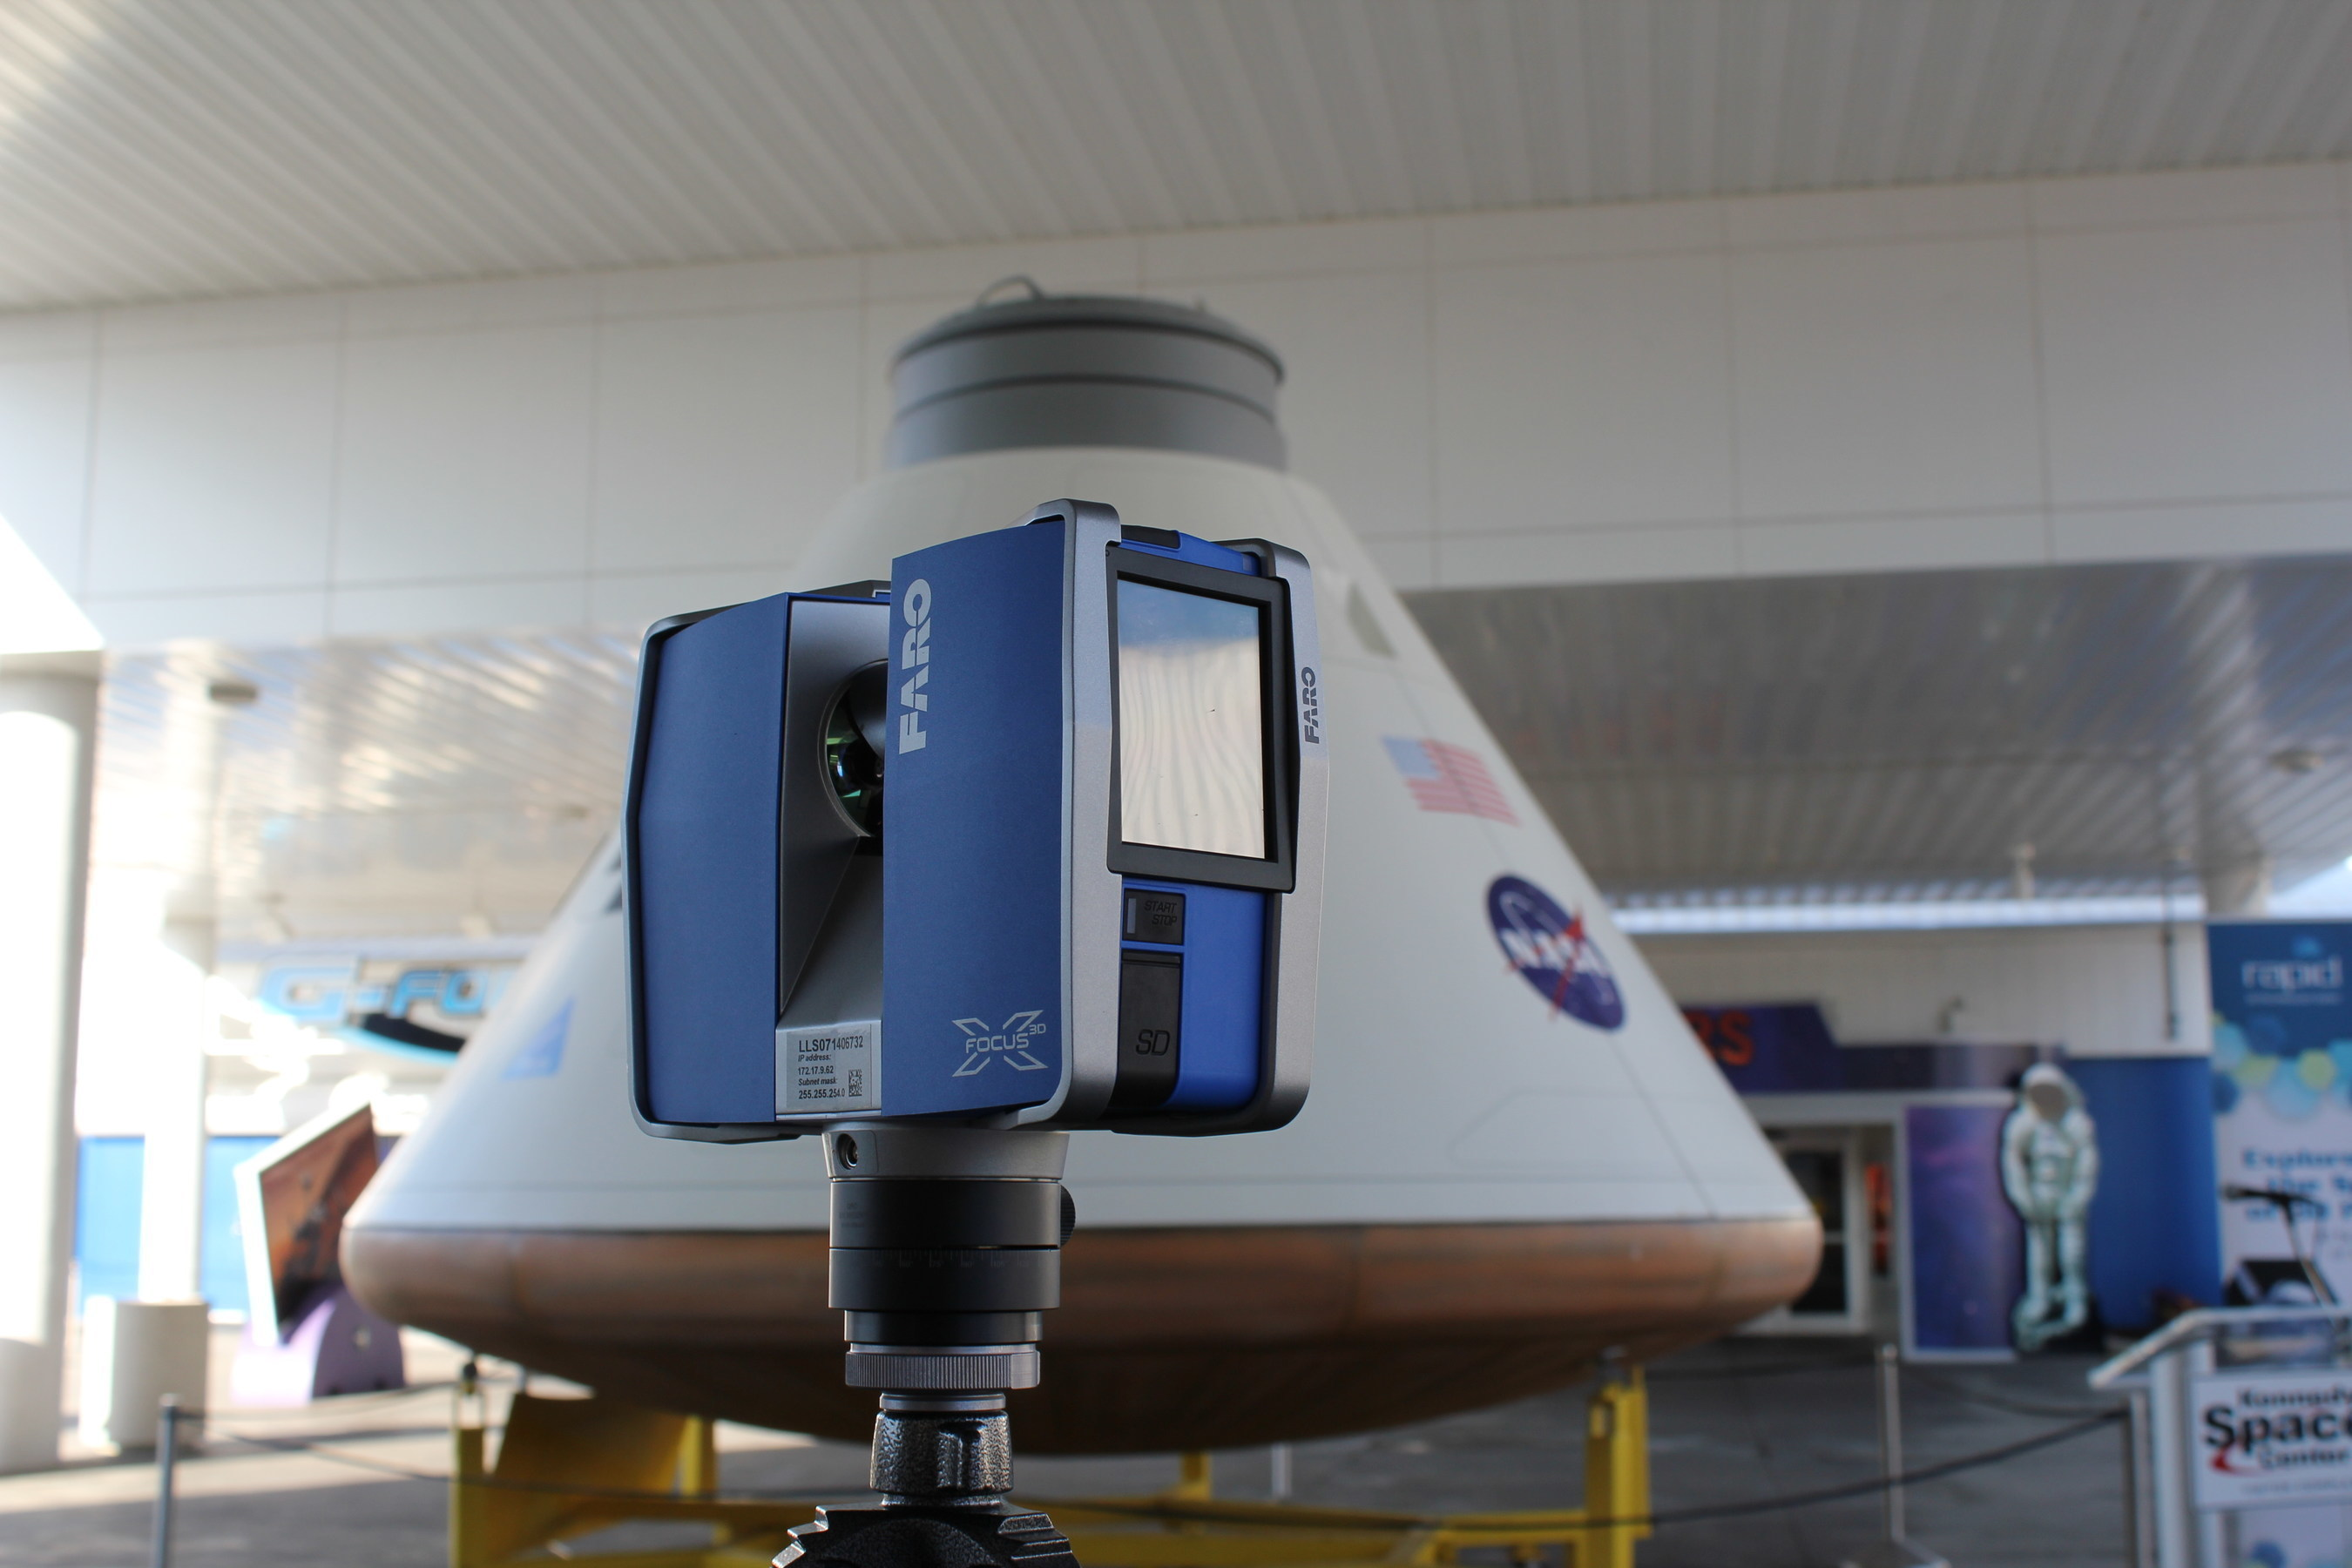 FARO Focus 3D X330 Scanner positioned to 3D laser scan the Orion exterior capsule model.